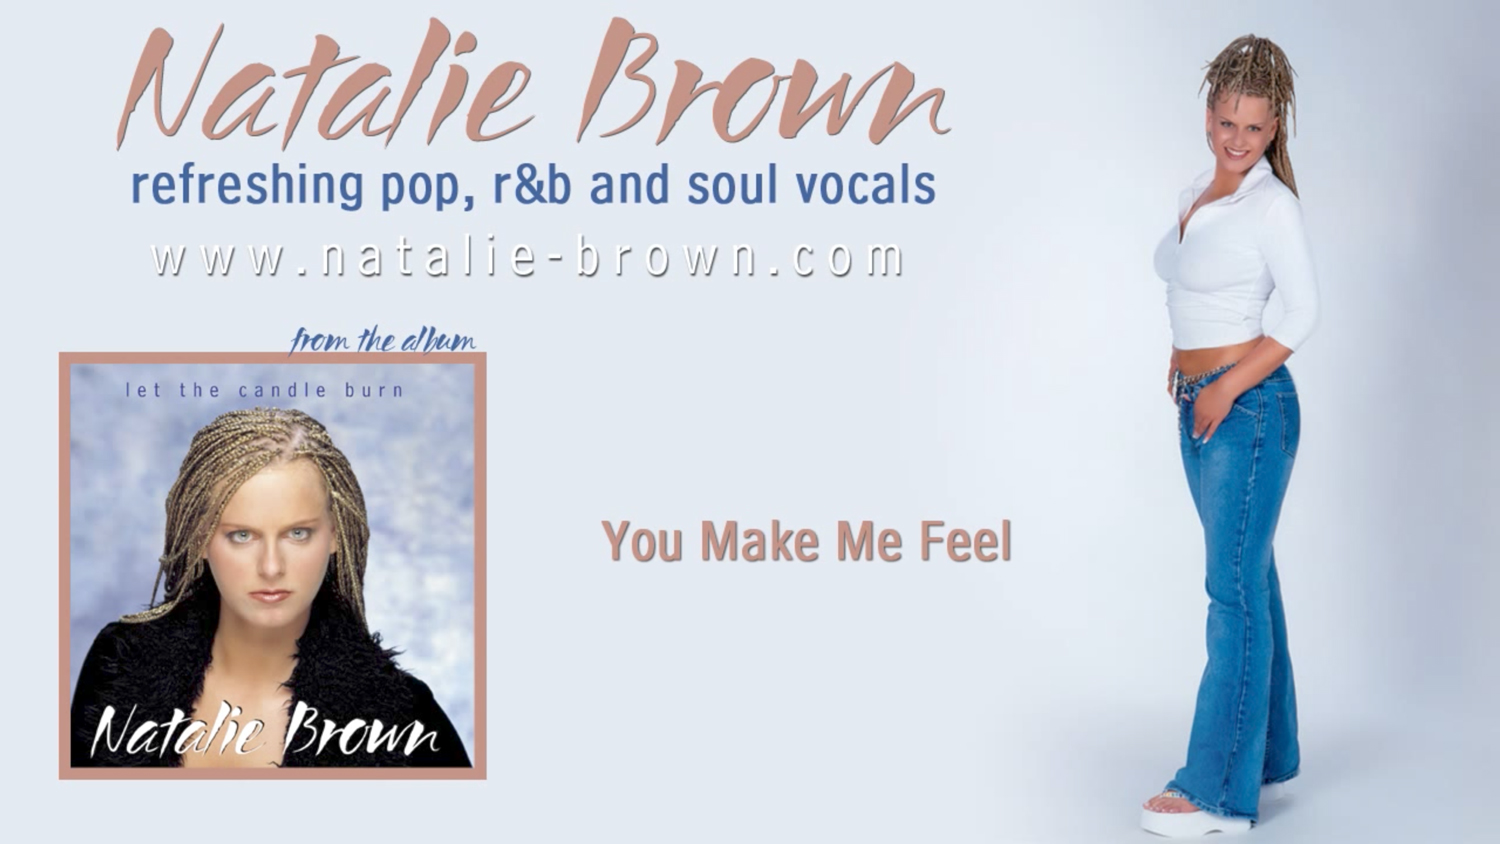 | Natalie Brown | You Make Me Feel | Let The Candle Burn